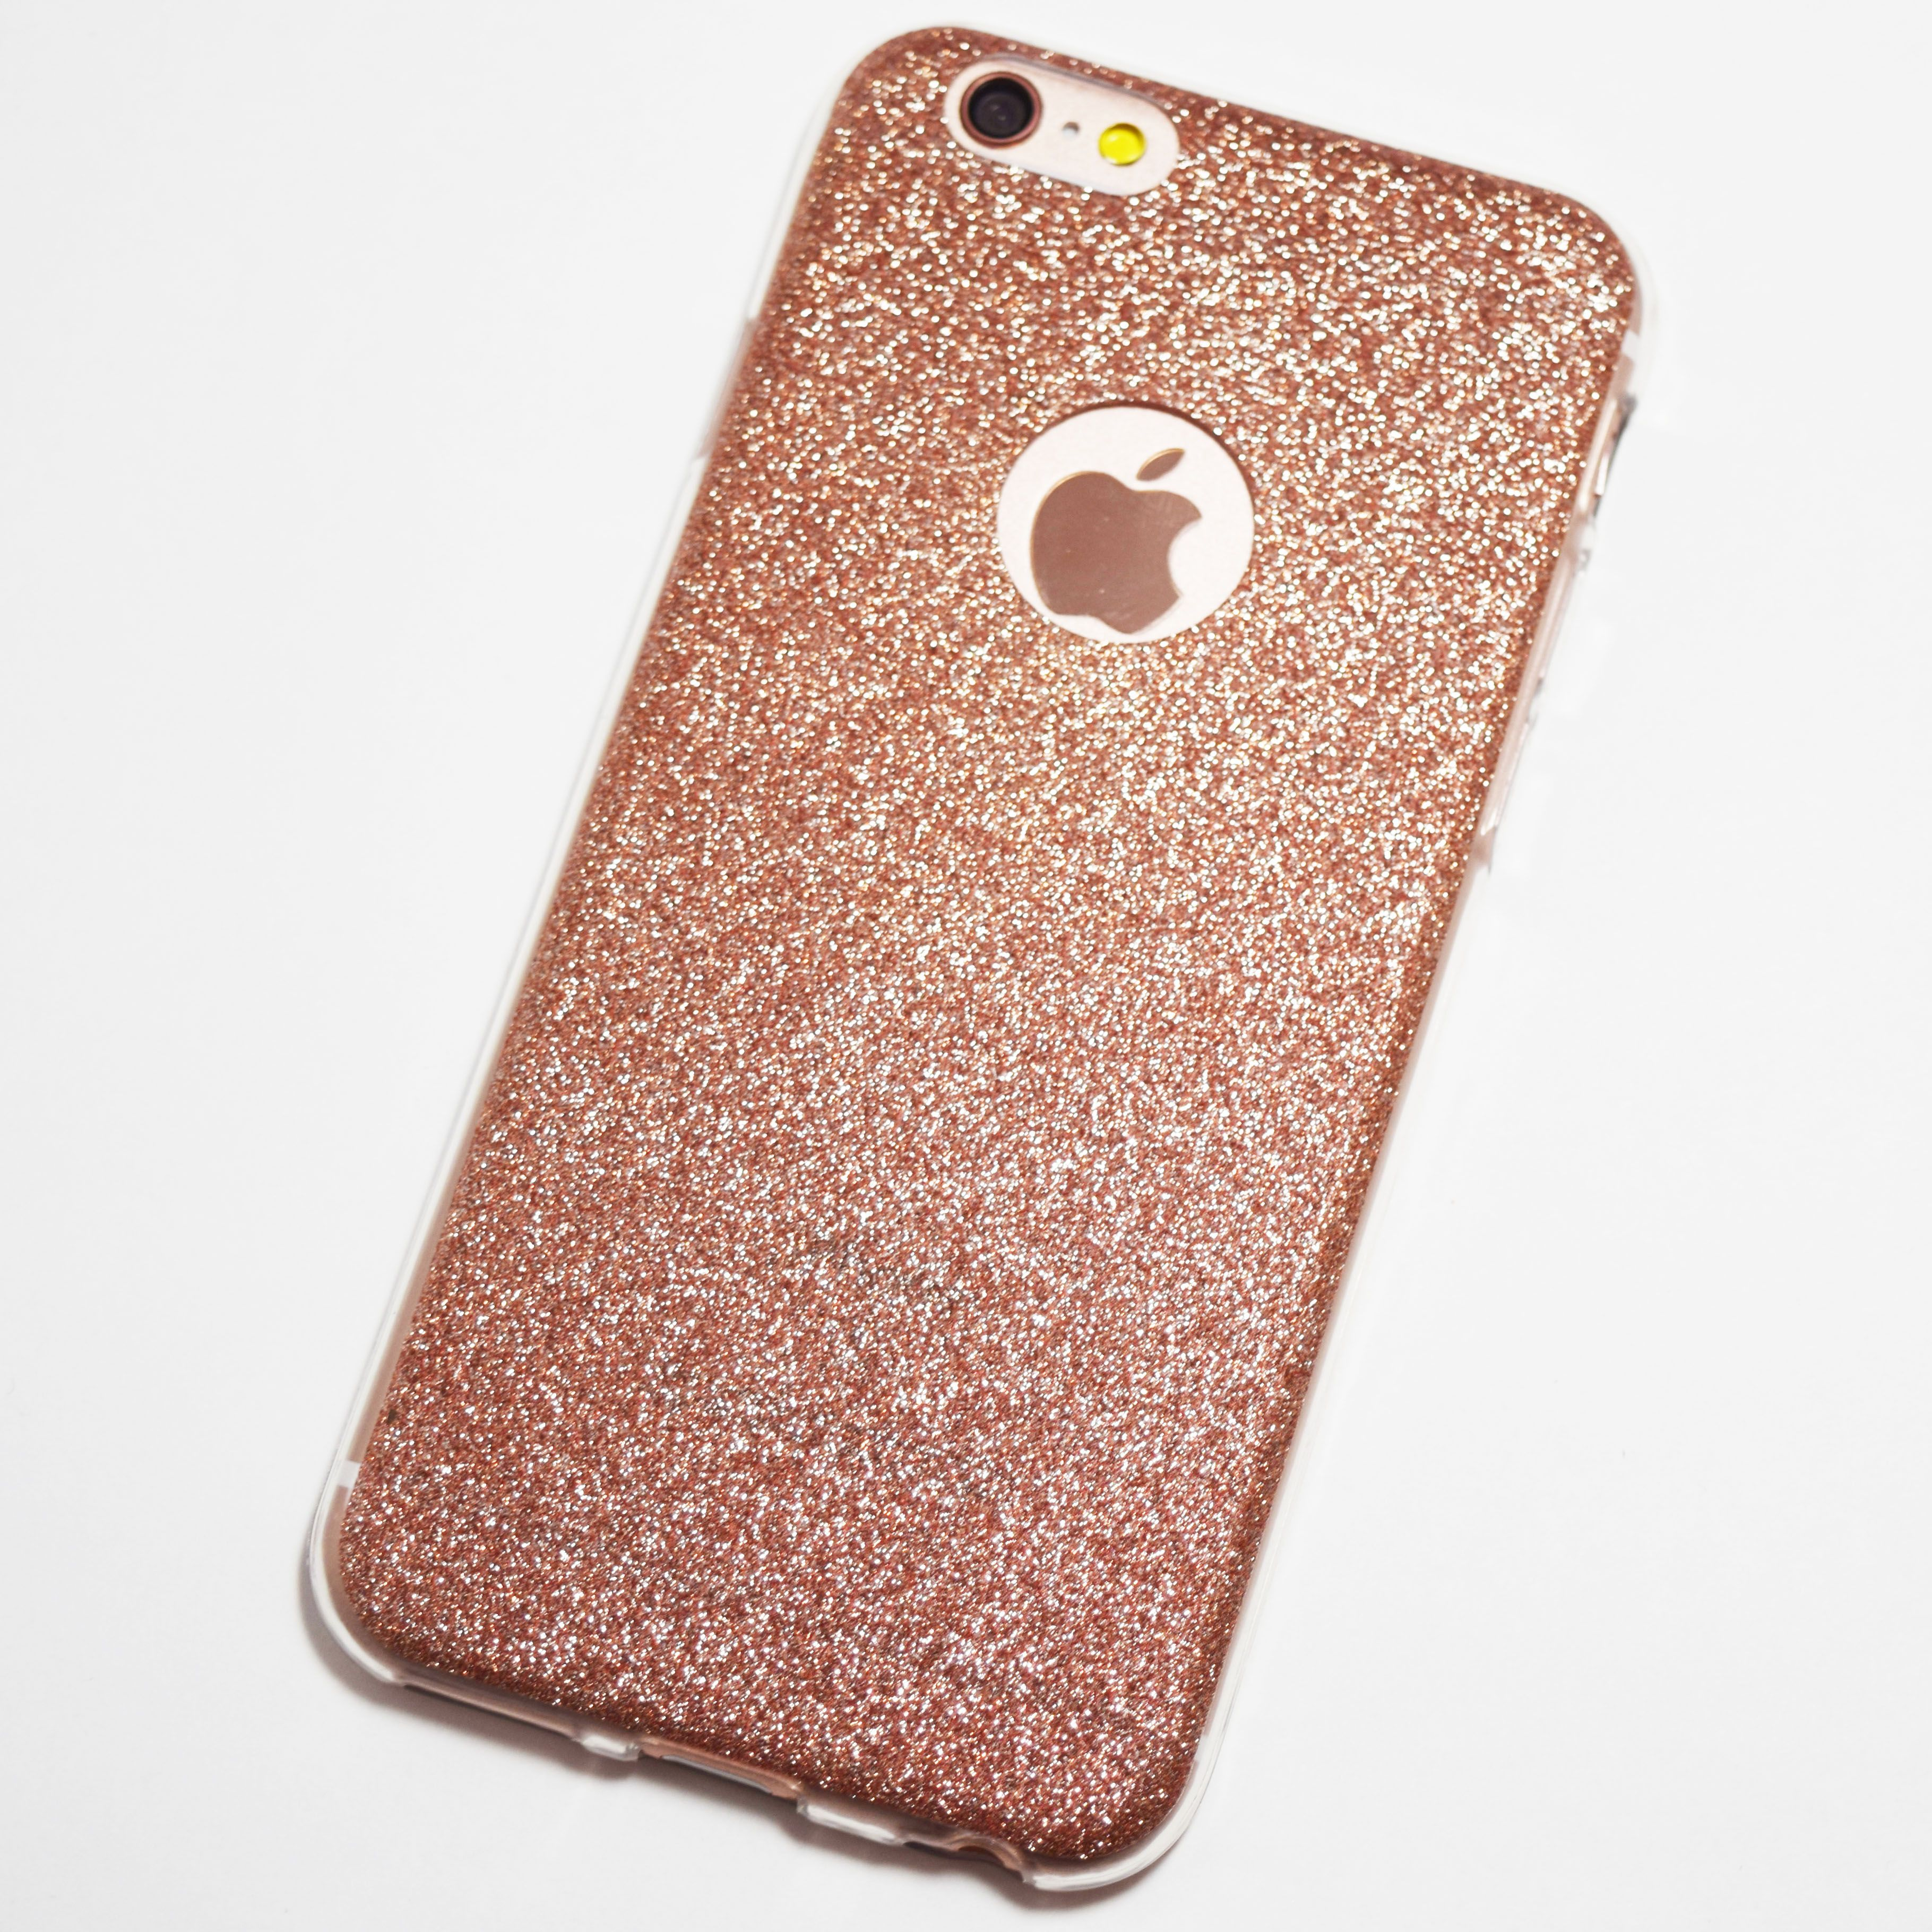 Pin On Iphone 6 Iphone 6s Cases